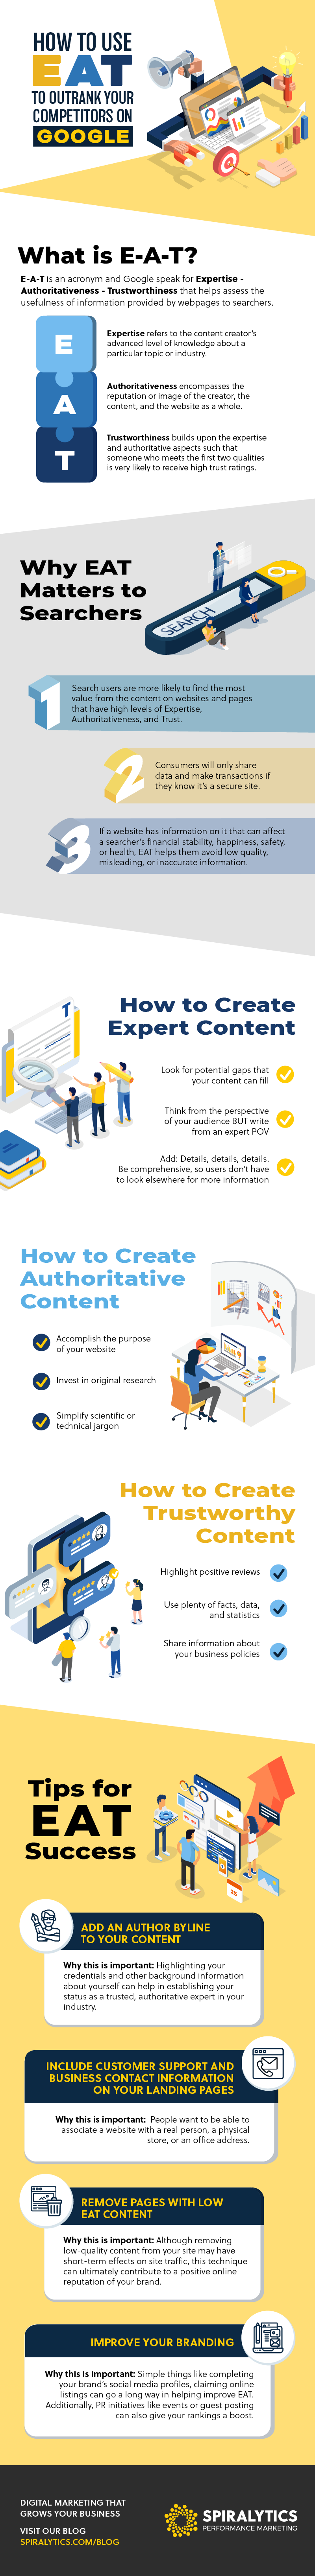 How to Outrak Competitors with Google EAT - Infographic